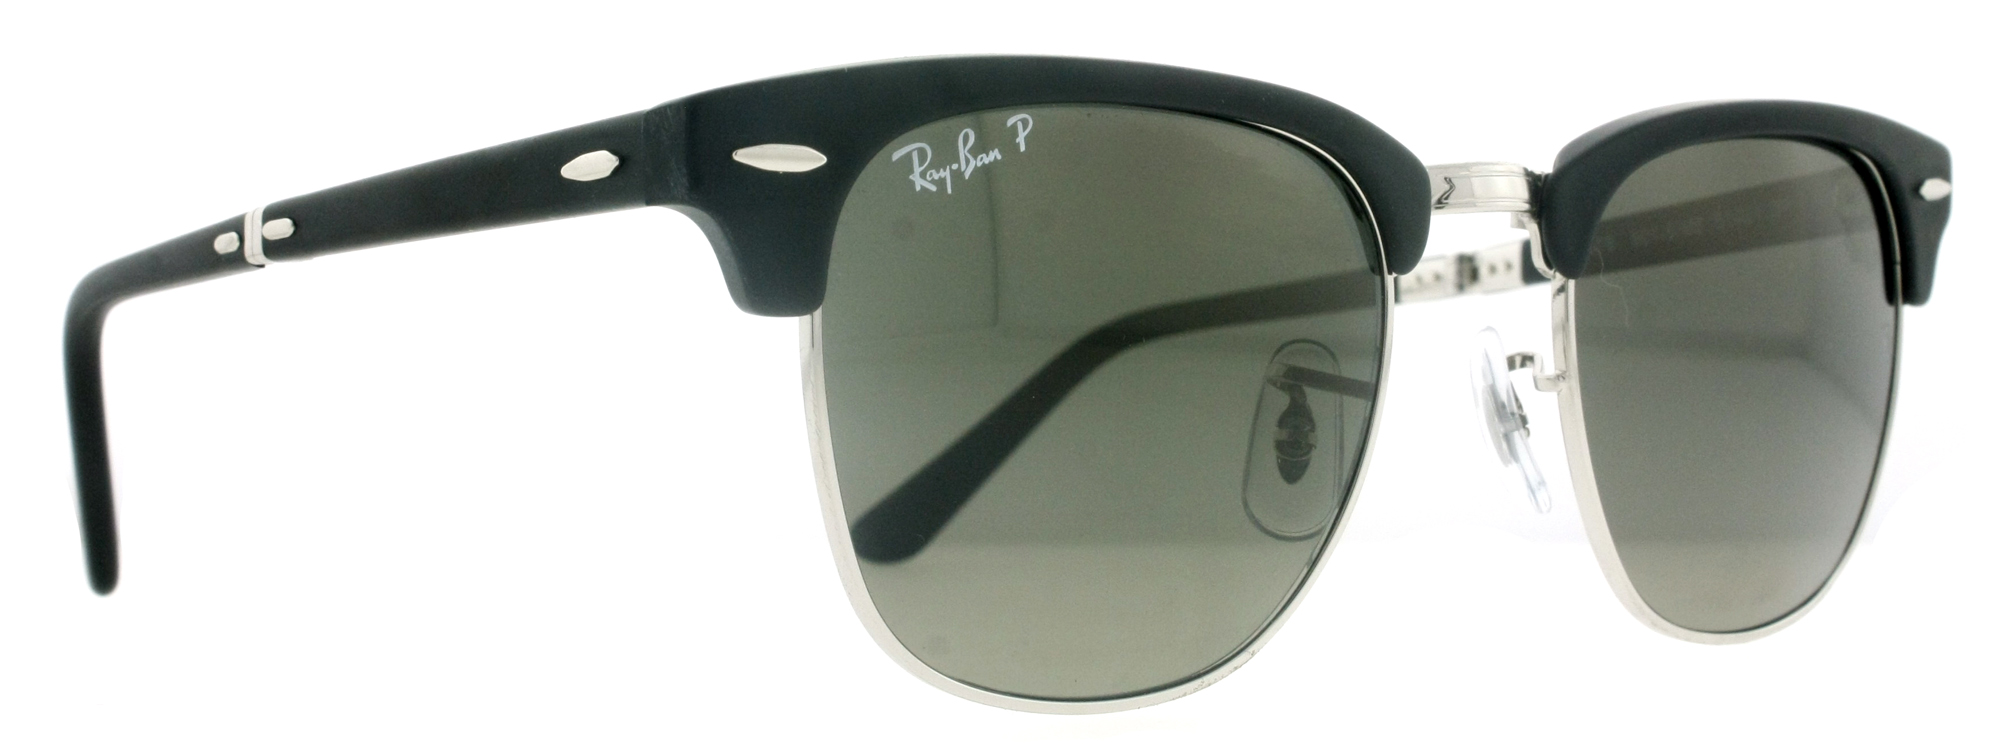 ray ban clubmaster classic  ray ban rb 2176 clubmaster